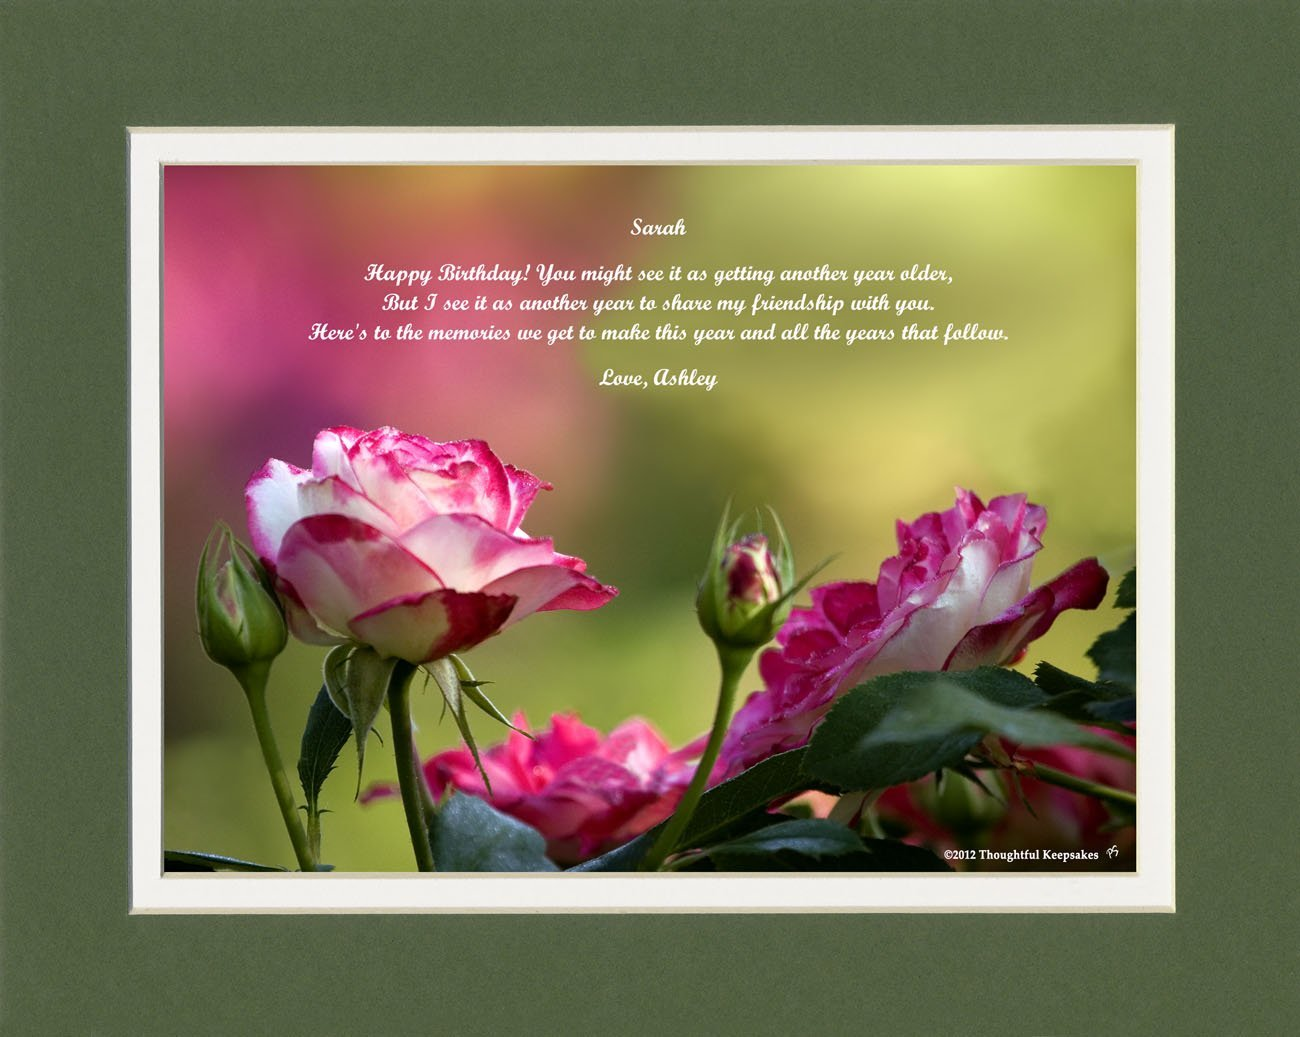 Get Quotations Personalized Friend Birthday Gift Roses Photo With Happy You Might See It